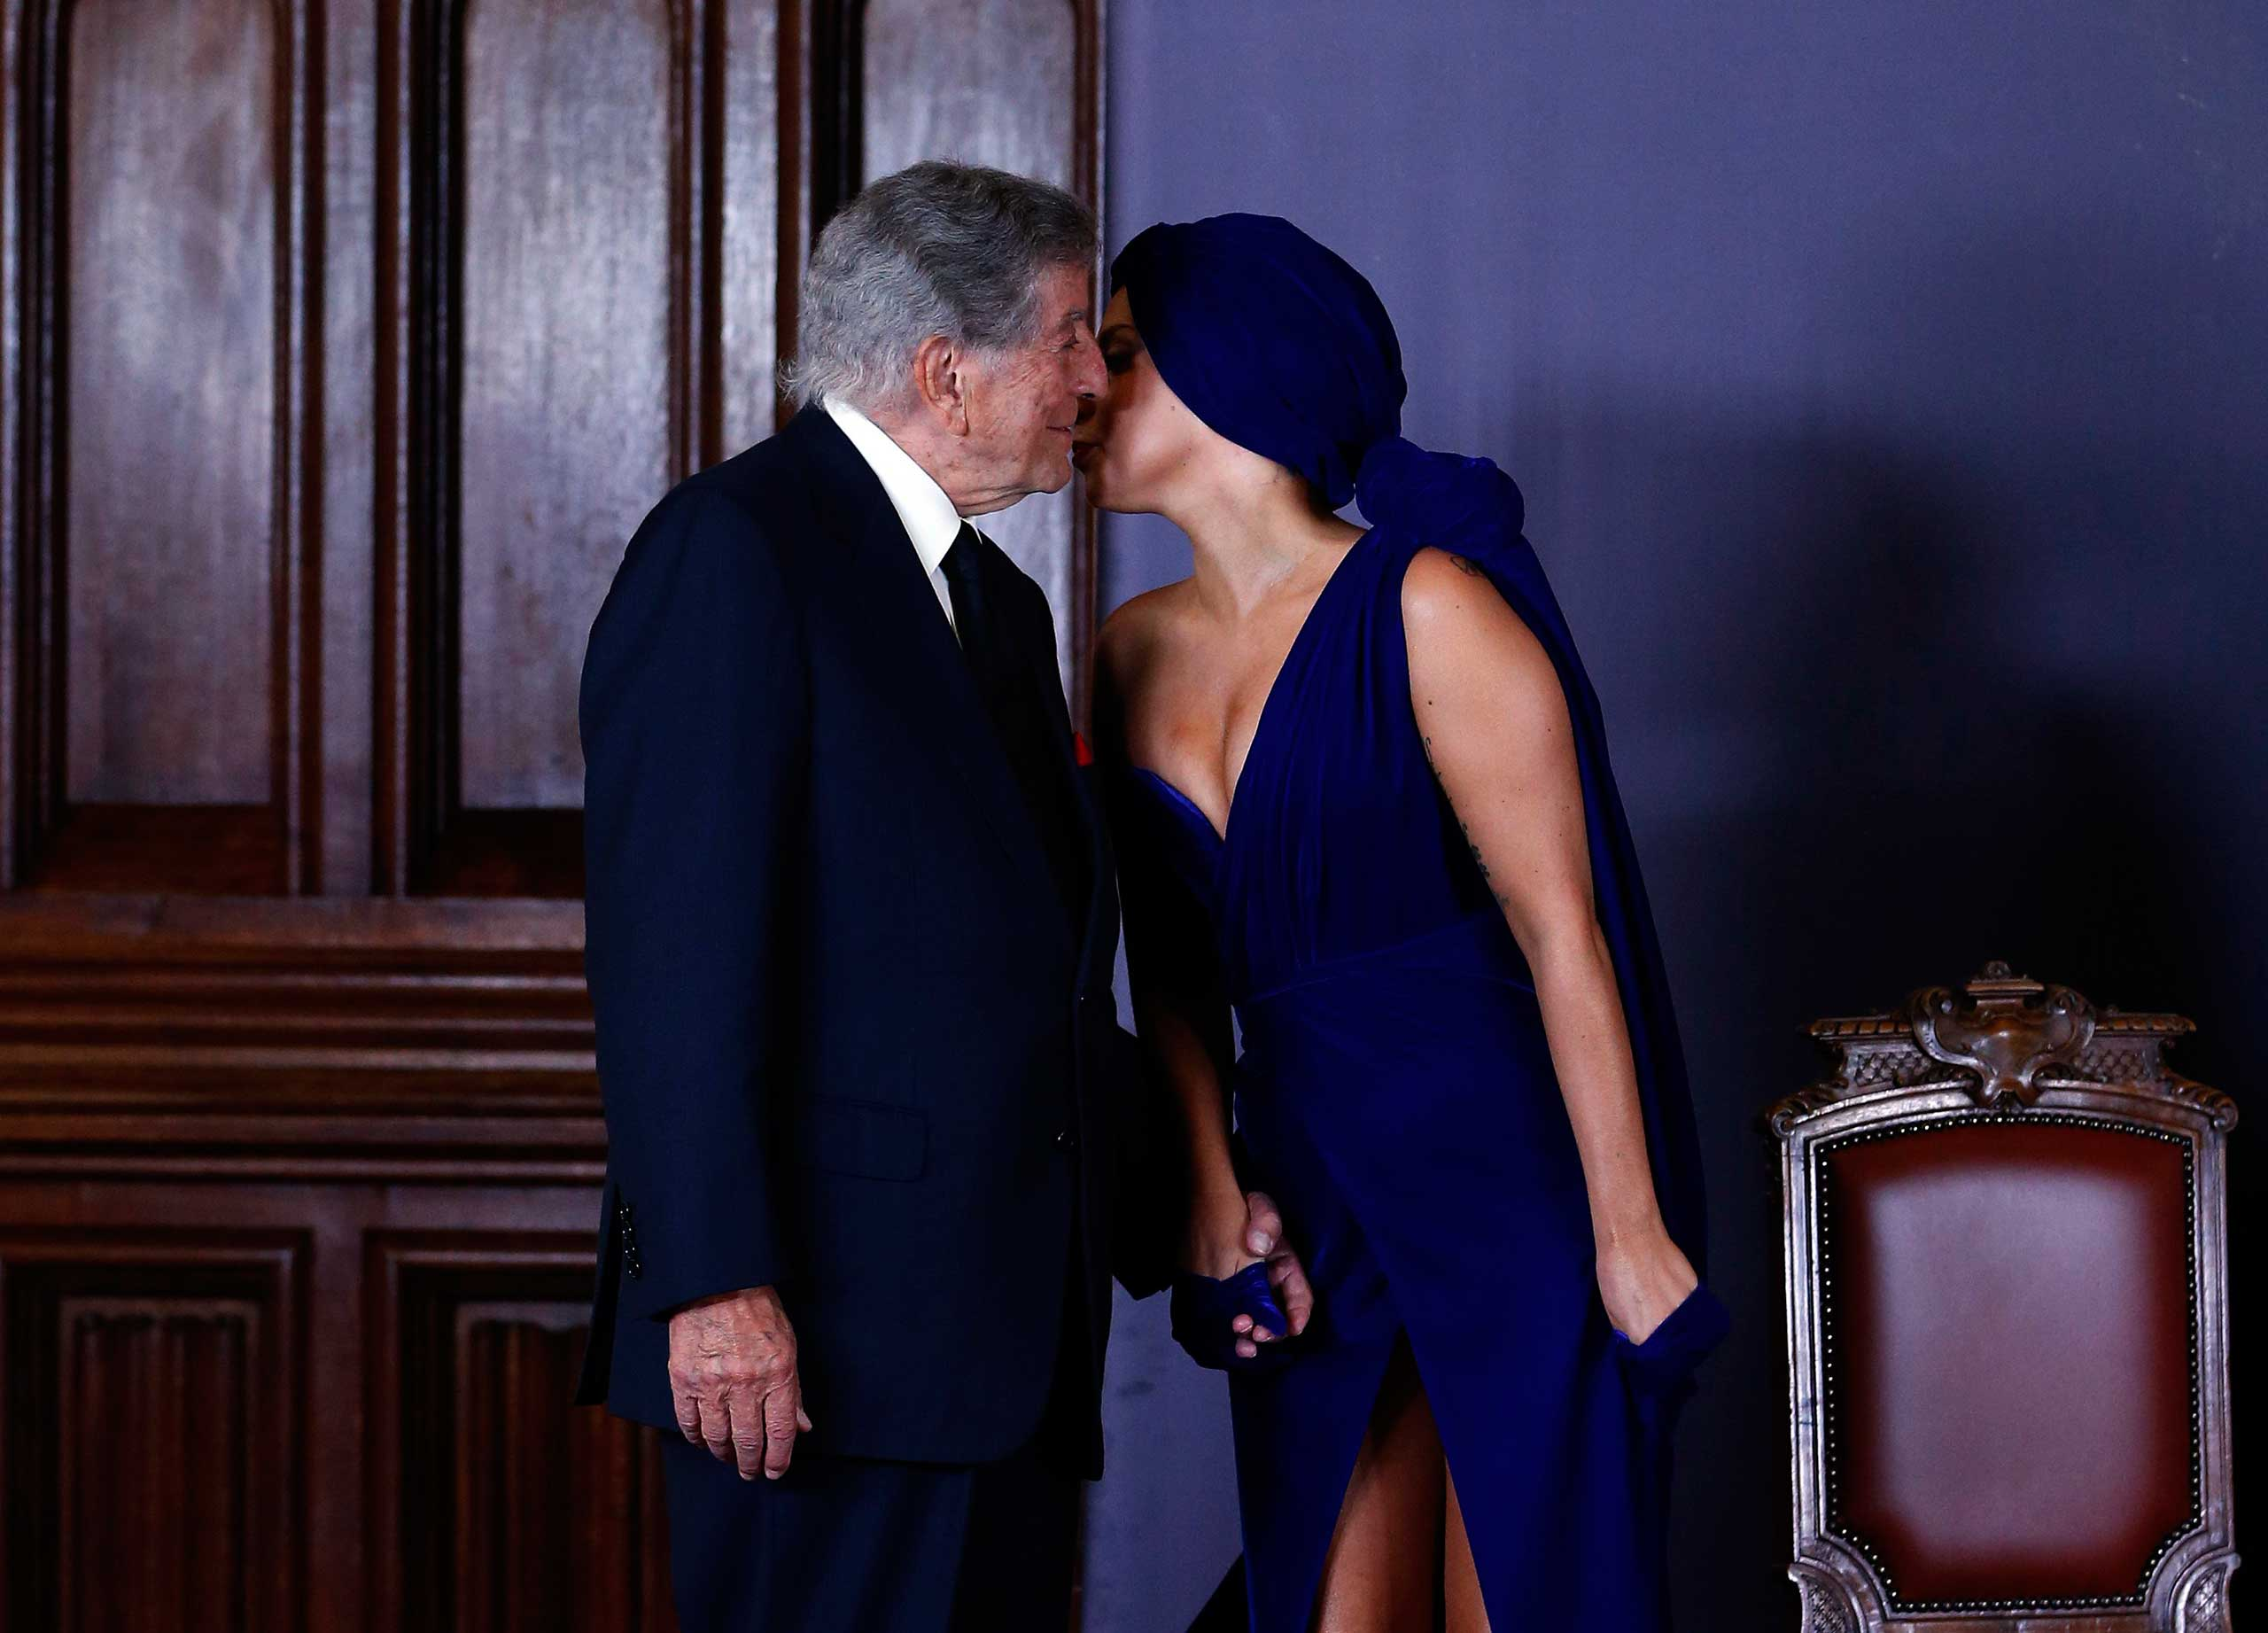 Sept. 22, 2014. Singers Lady Gaga and Tony Bennett arrive at a news conference, ahead of their concert, in Brussels.